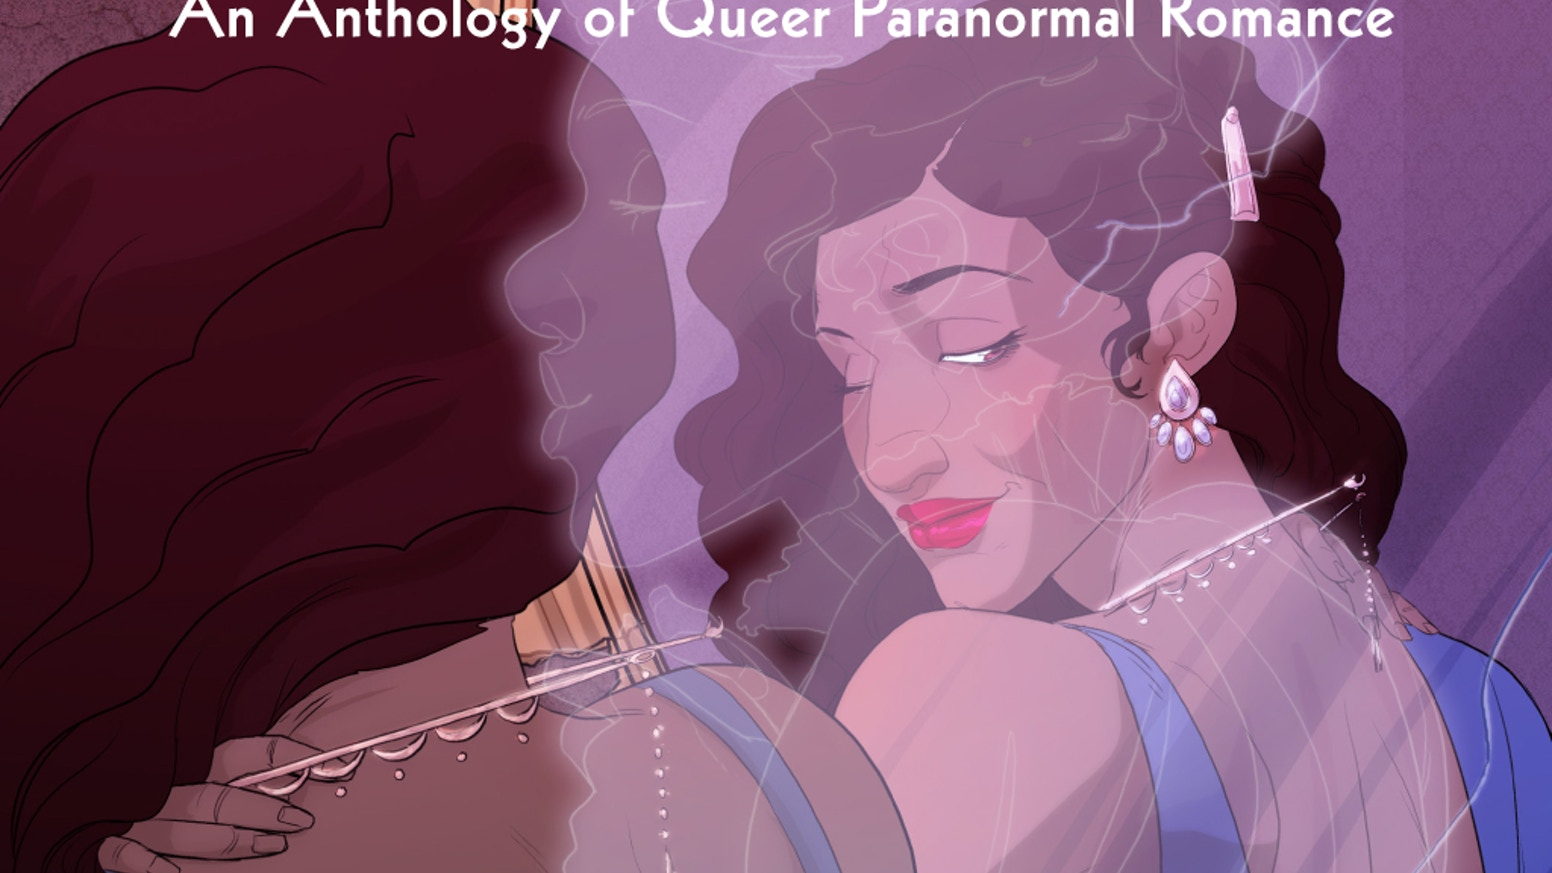 A gorgeous, 200 page queer paranormal romance comic anthology edited by Melanie Gillman and Kori Michele Handwerker.